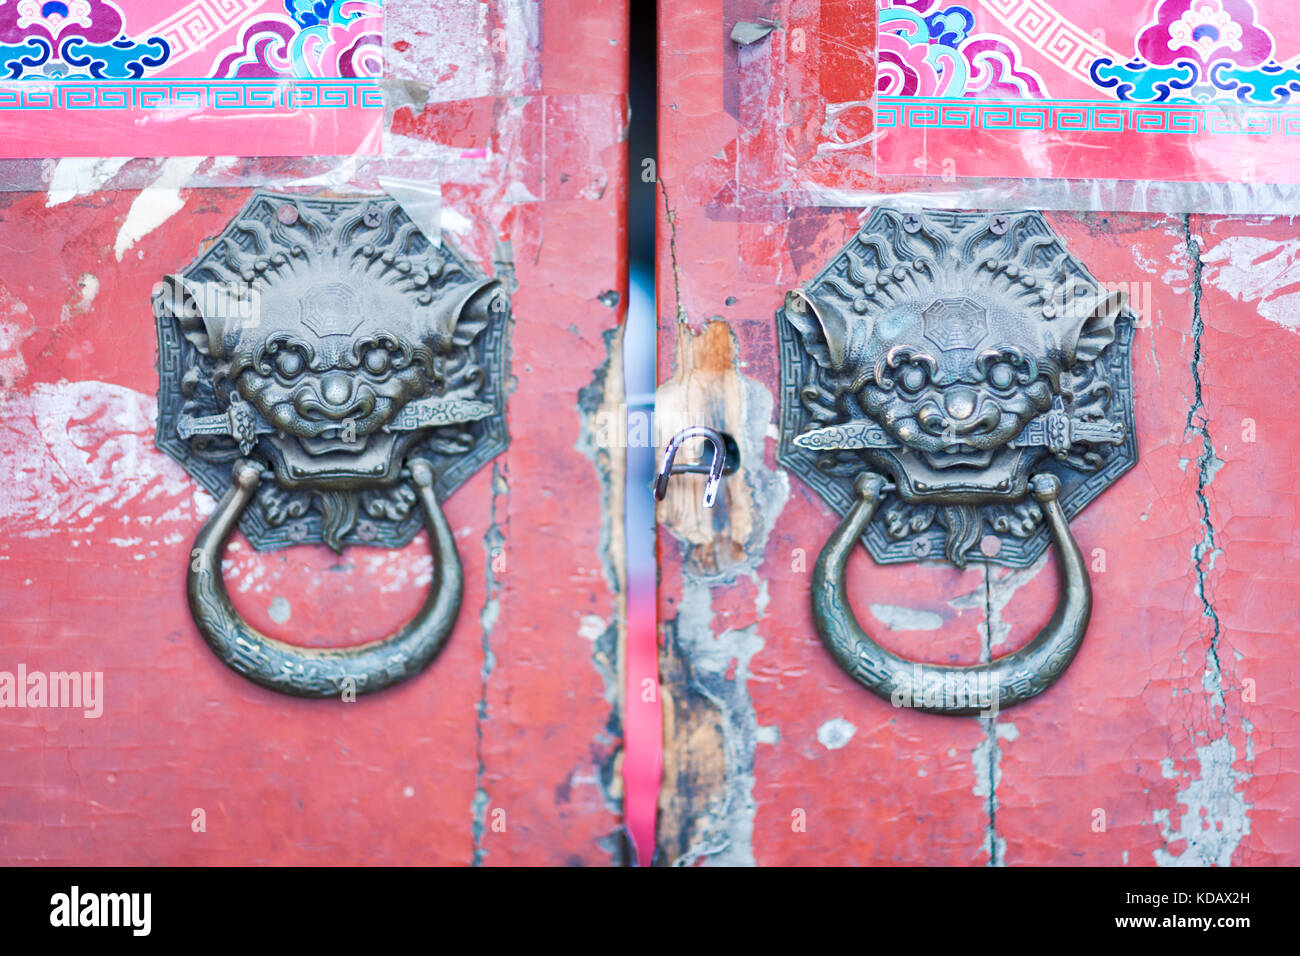 Classic Chinese bronze lion head door knocker at Hutong alley in Beijing, China - Stock Image